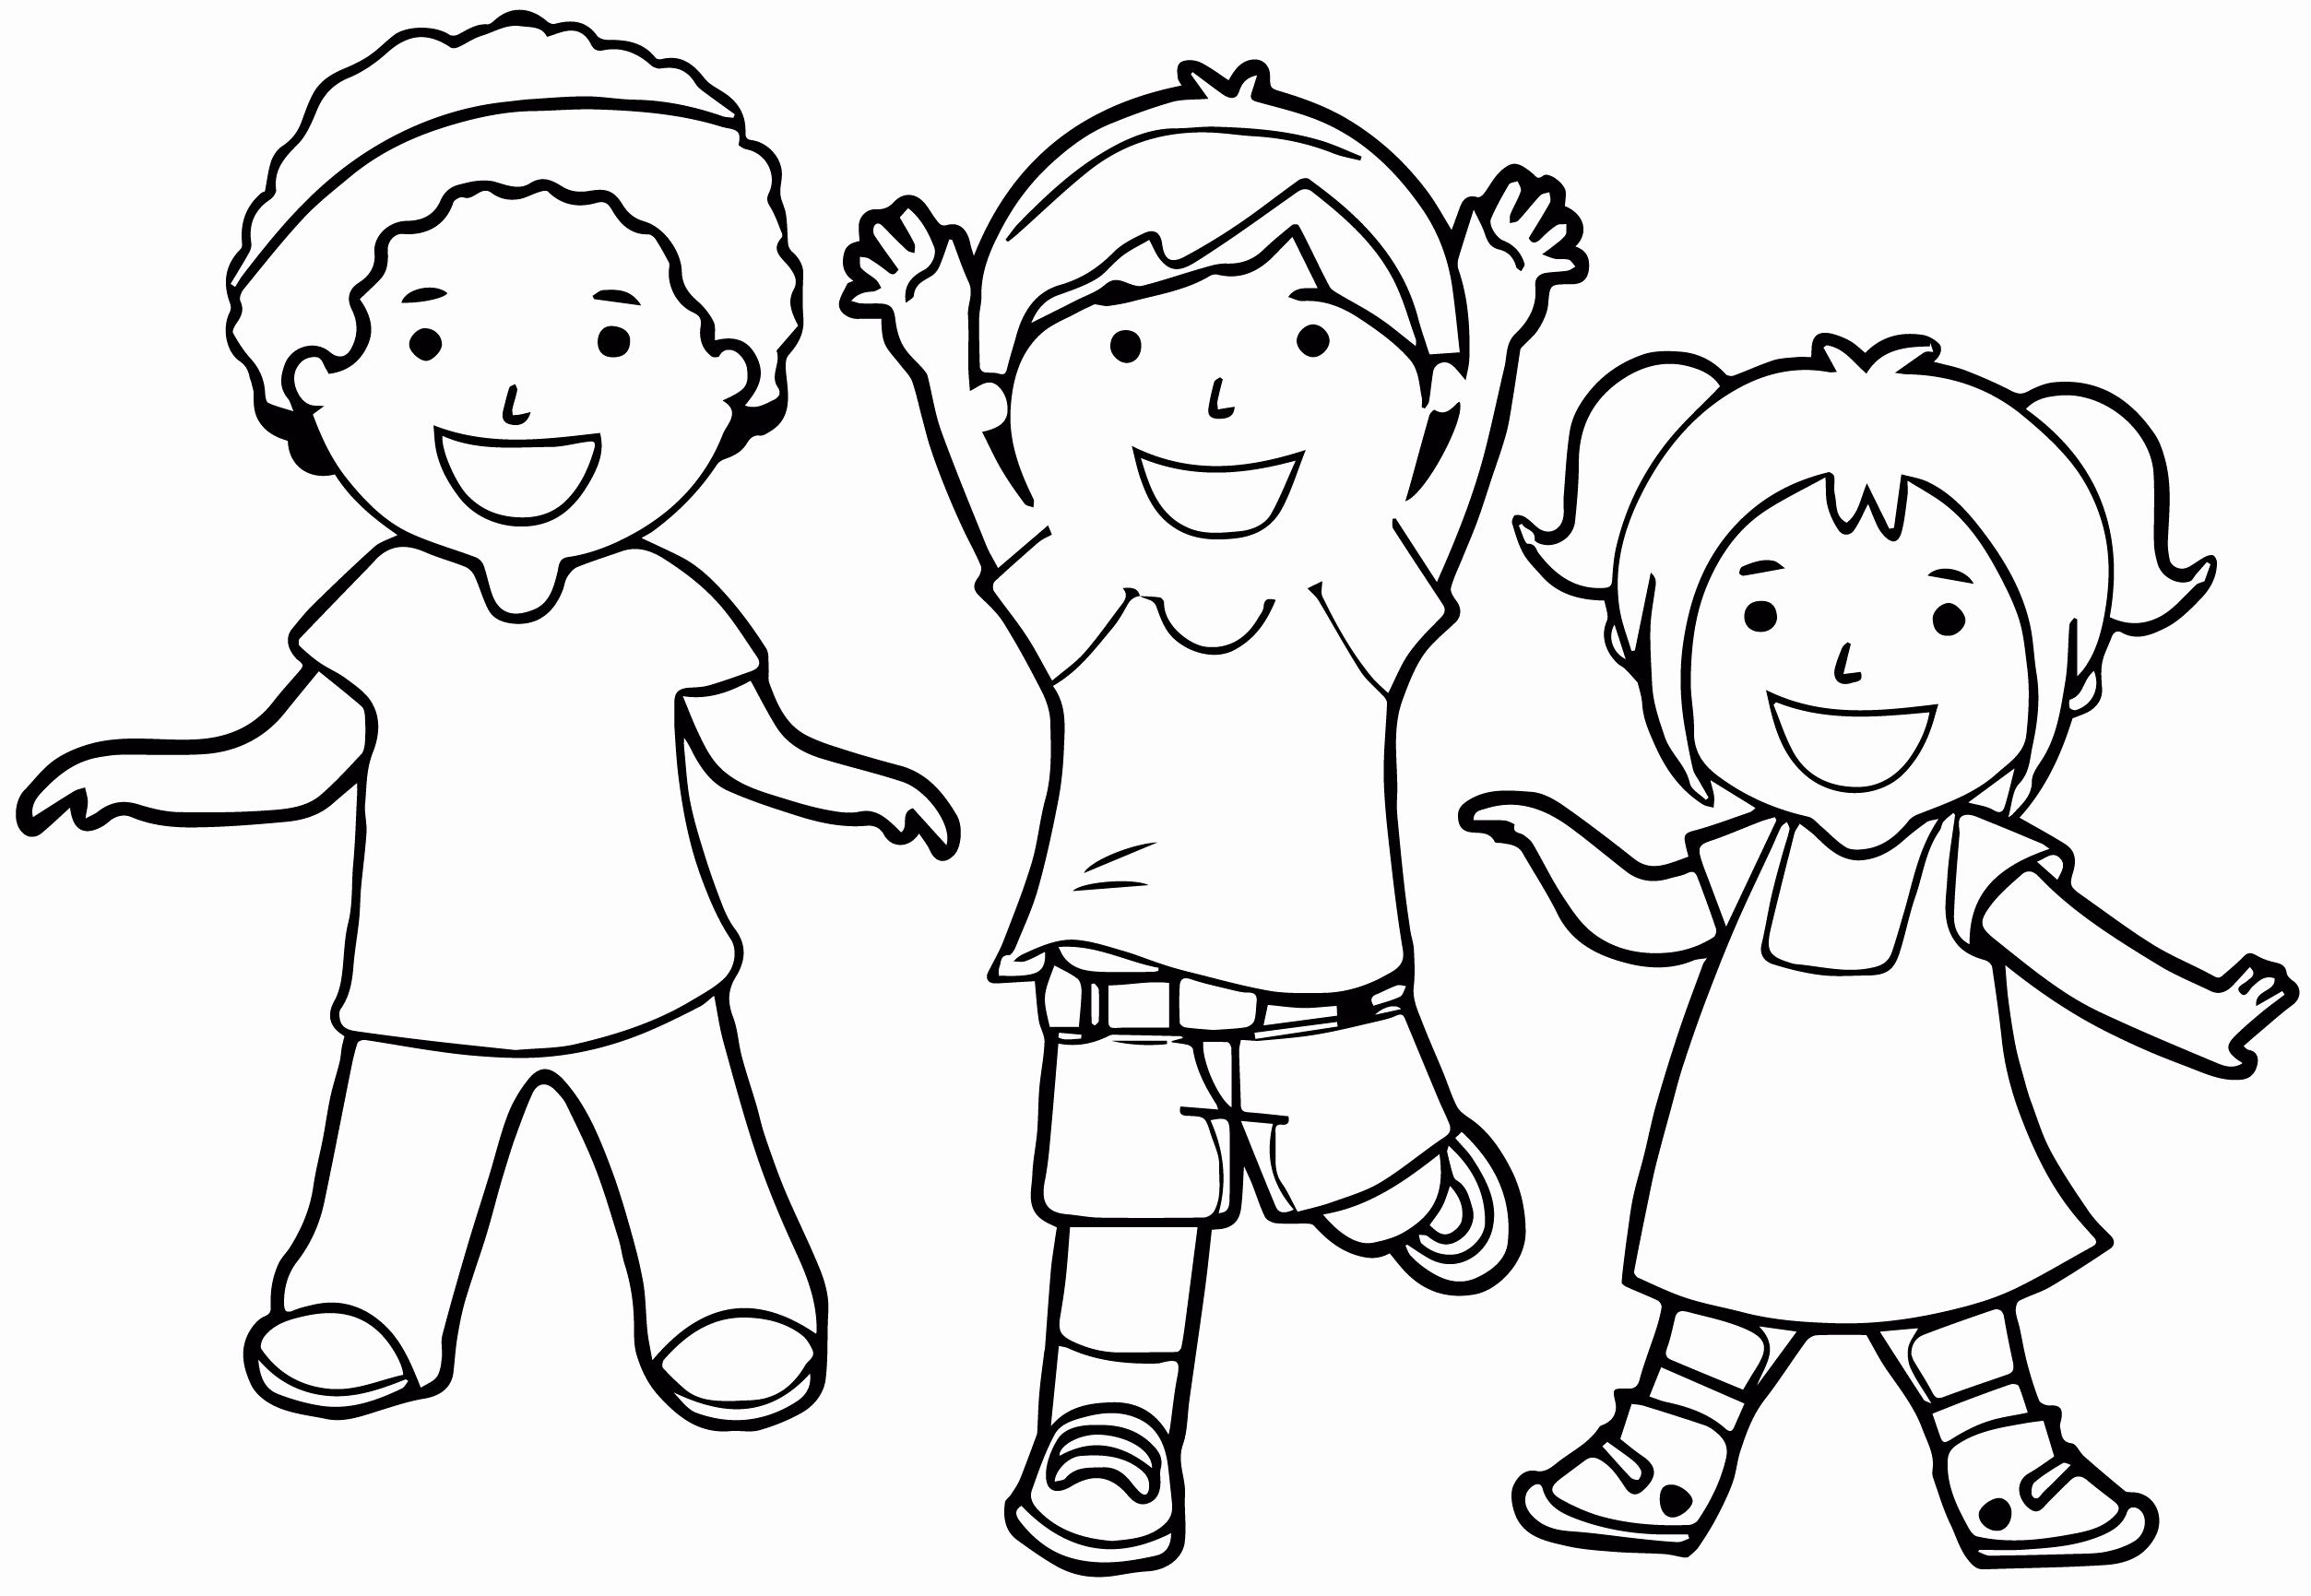 Kids Playing Coloring Pages In 2020 Coloring Pages For Boys